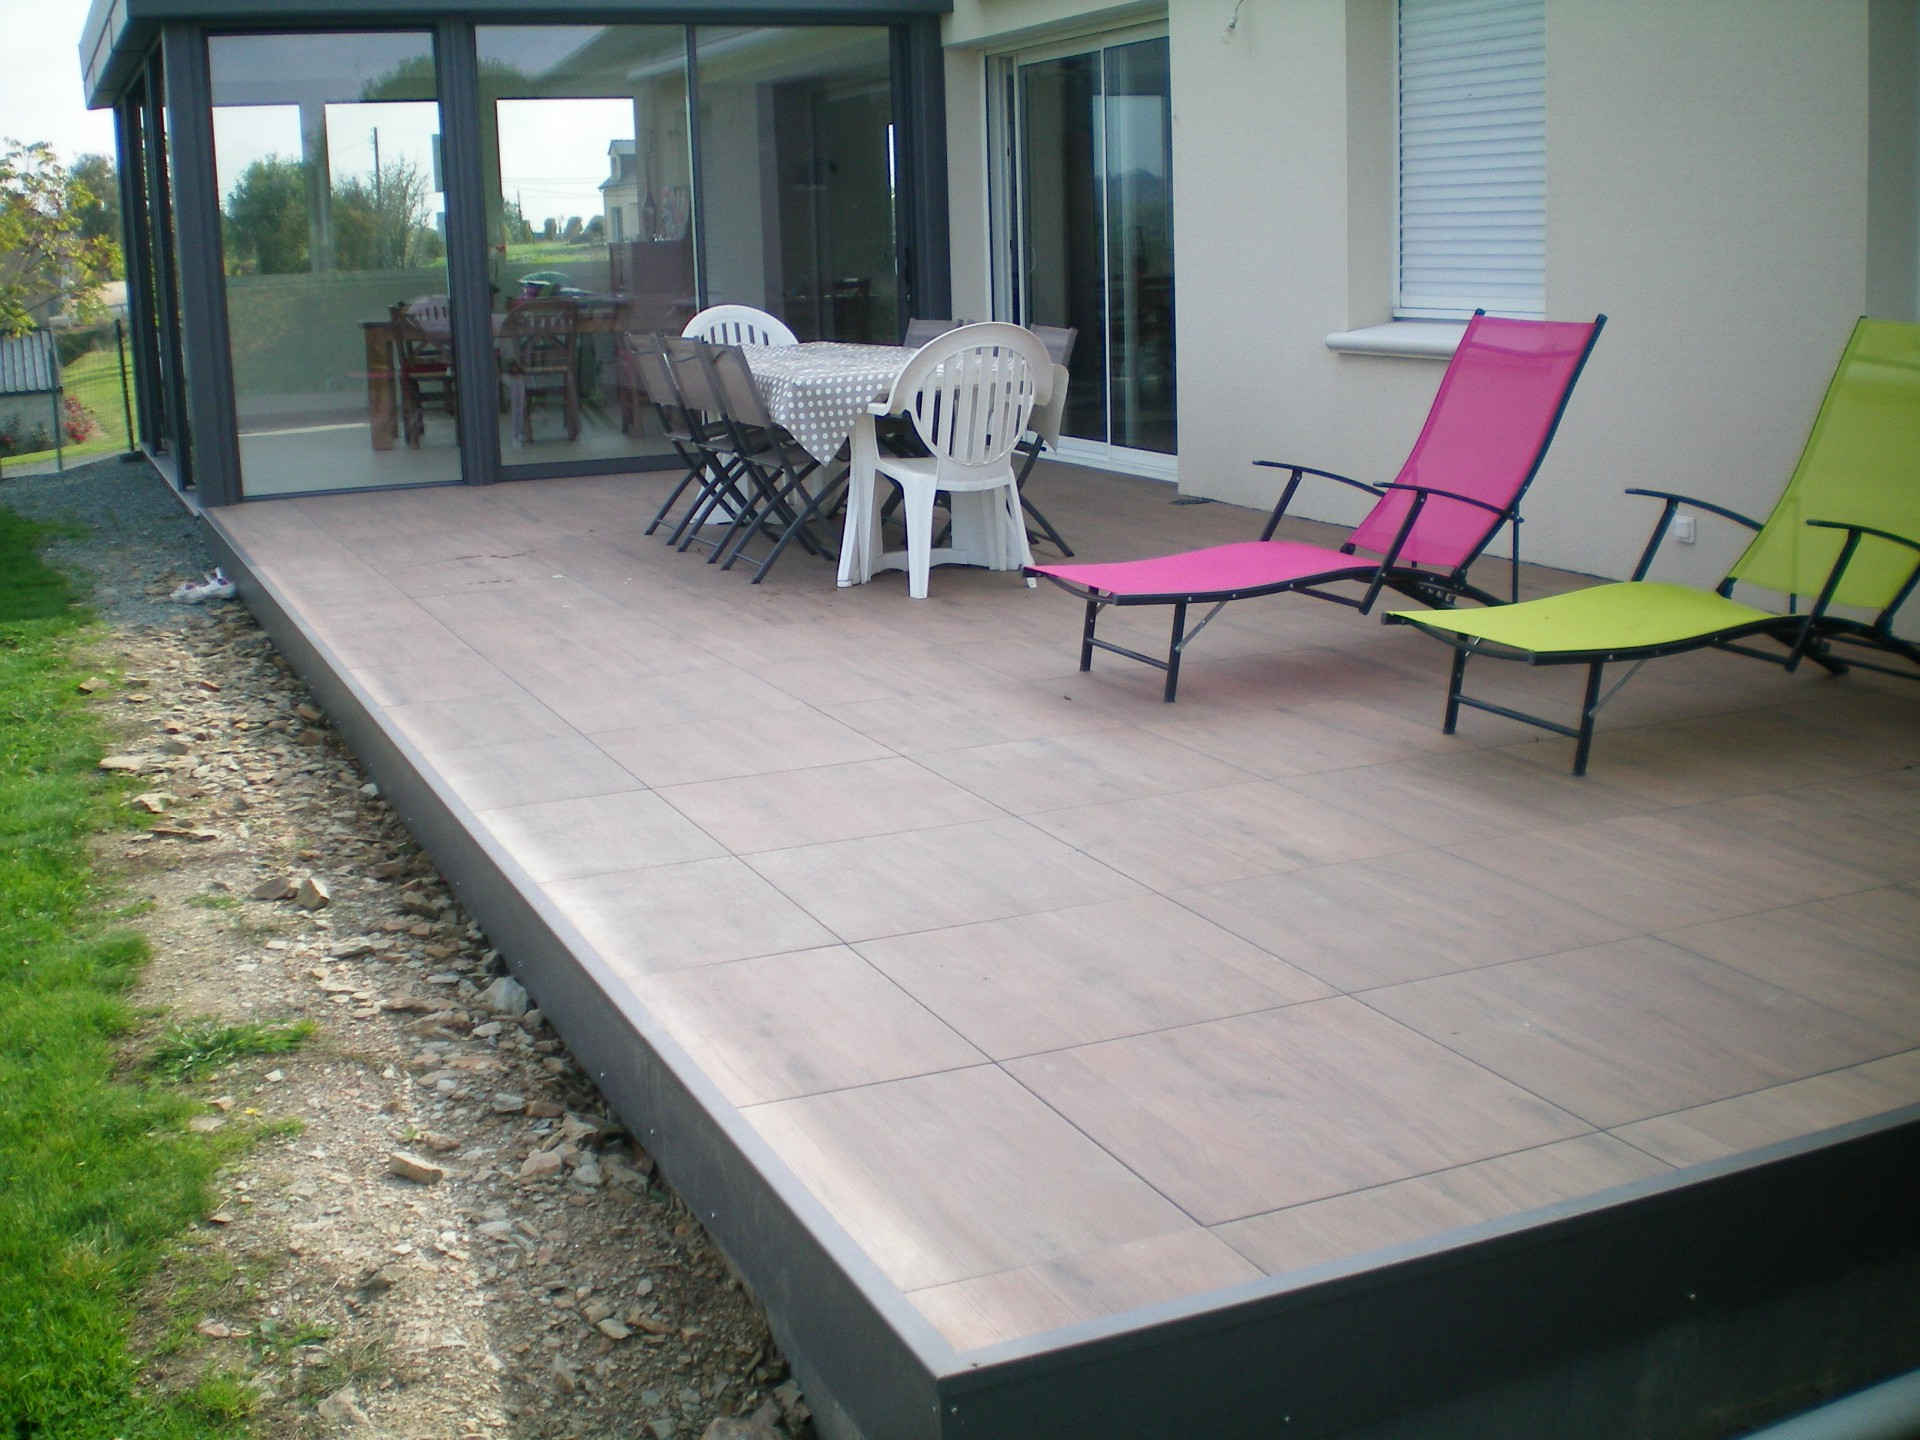 Carrelage design carrelage sur plot moderne design for Pose carrelage sur plots